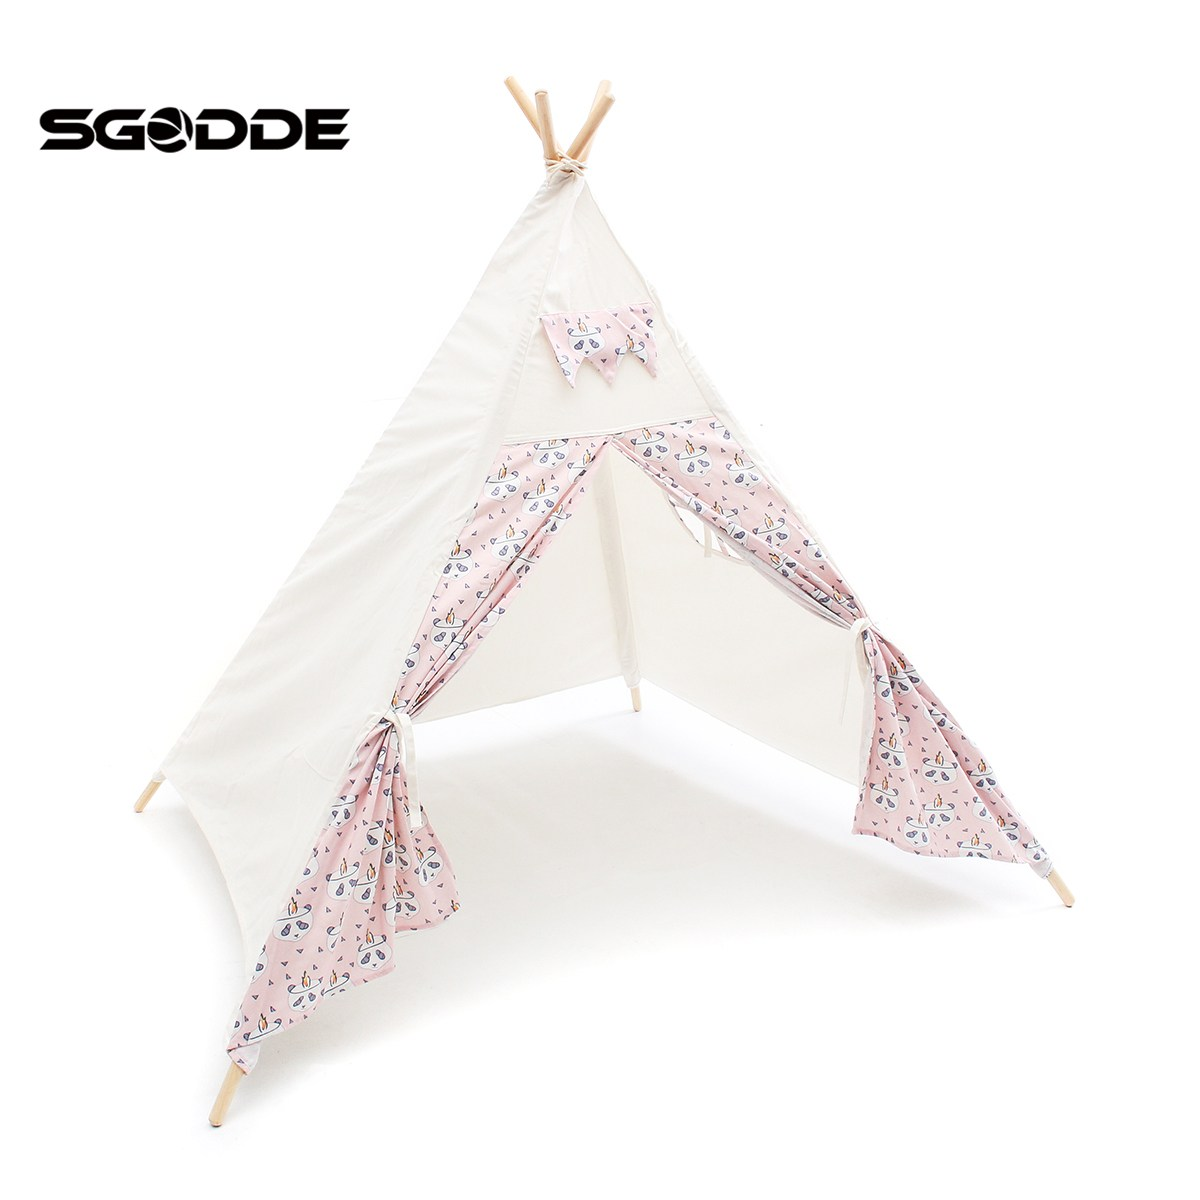 SGODDE Cute Play Tent Children Kids Playhouse Sleeping Dome Castle Toy House Gift Outdoor Camping Sun Shelter Supplies